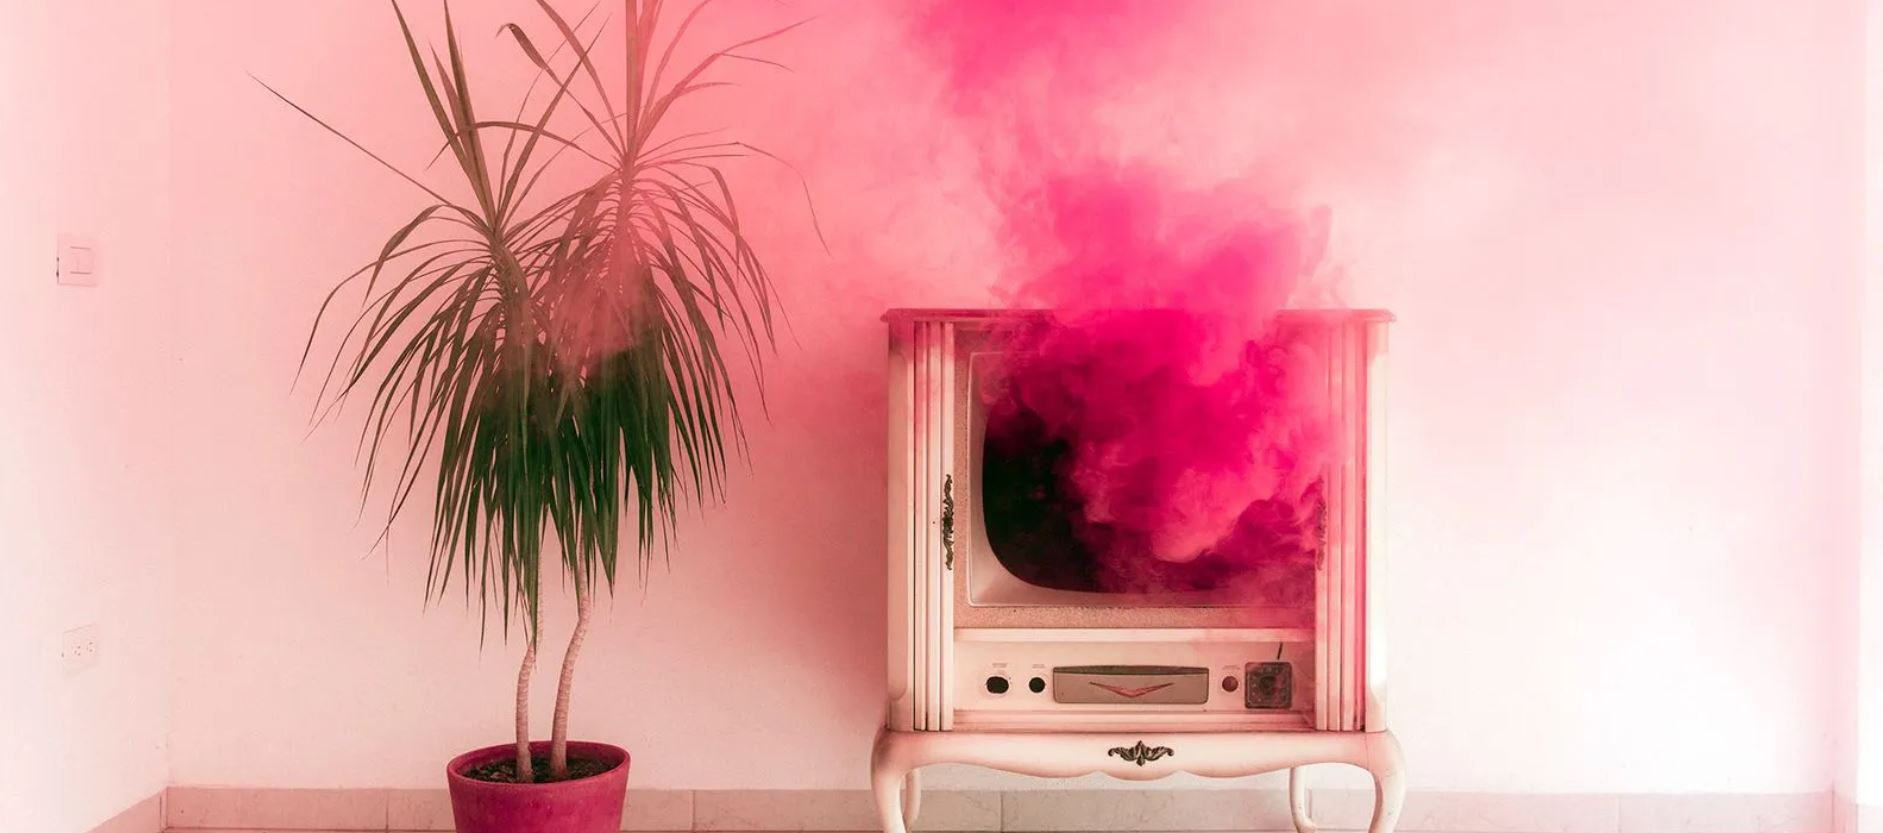 The people who want to send smells through your TV | BBC Future